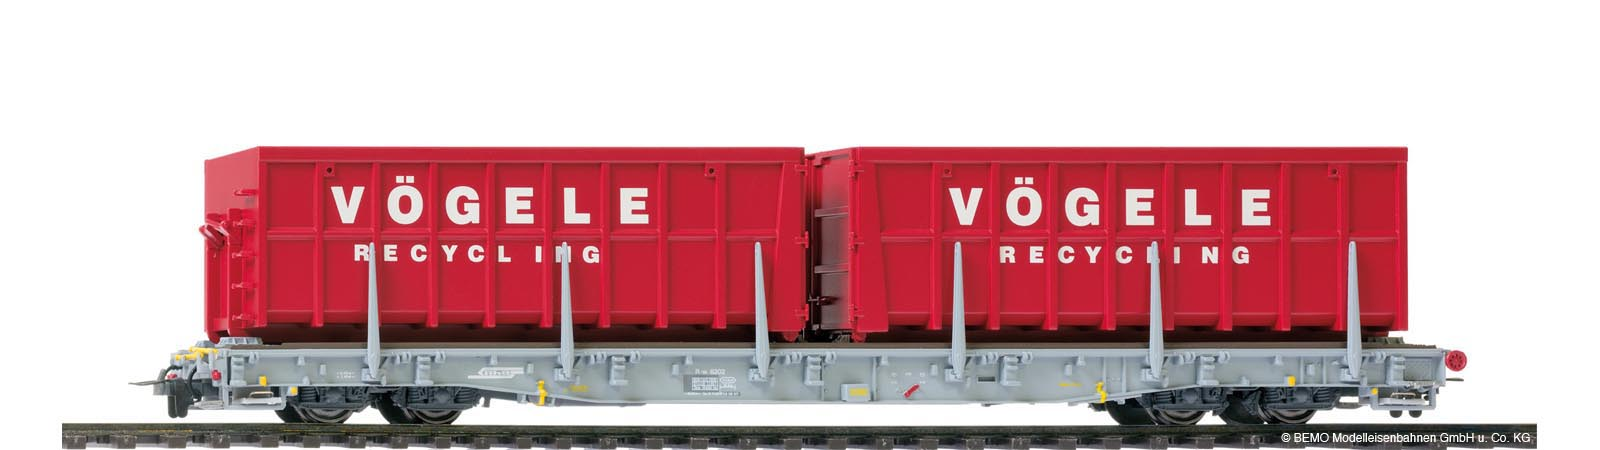 Bemo 2291 122RhB Rw 8202 ACTS carrier car ''Vögele Recycling''